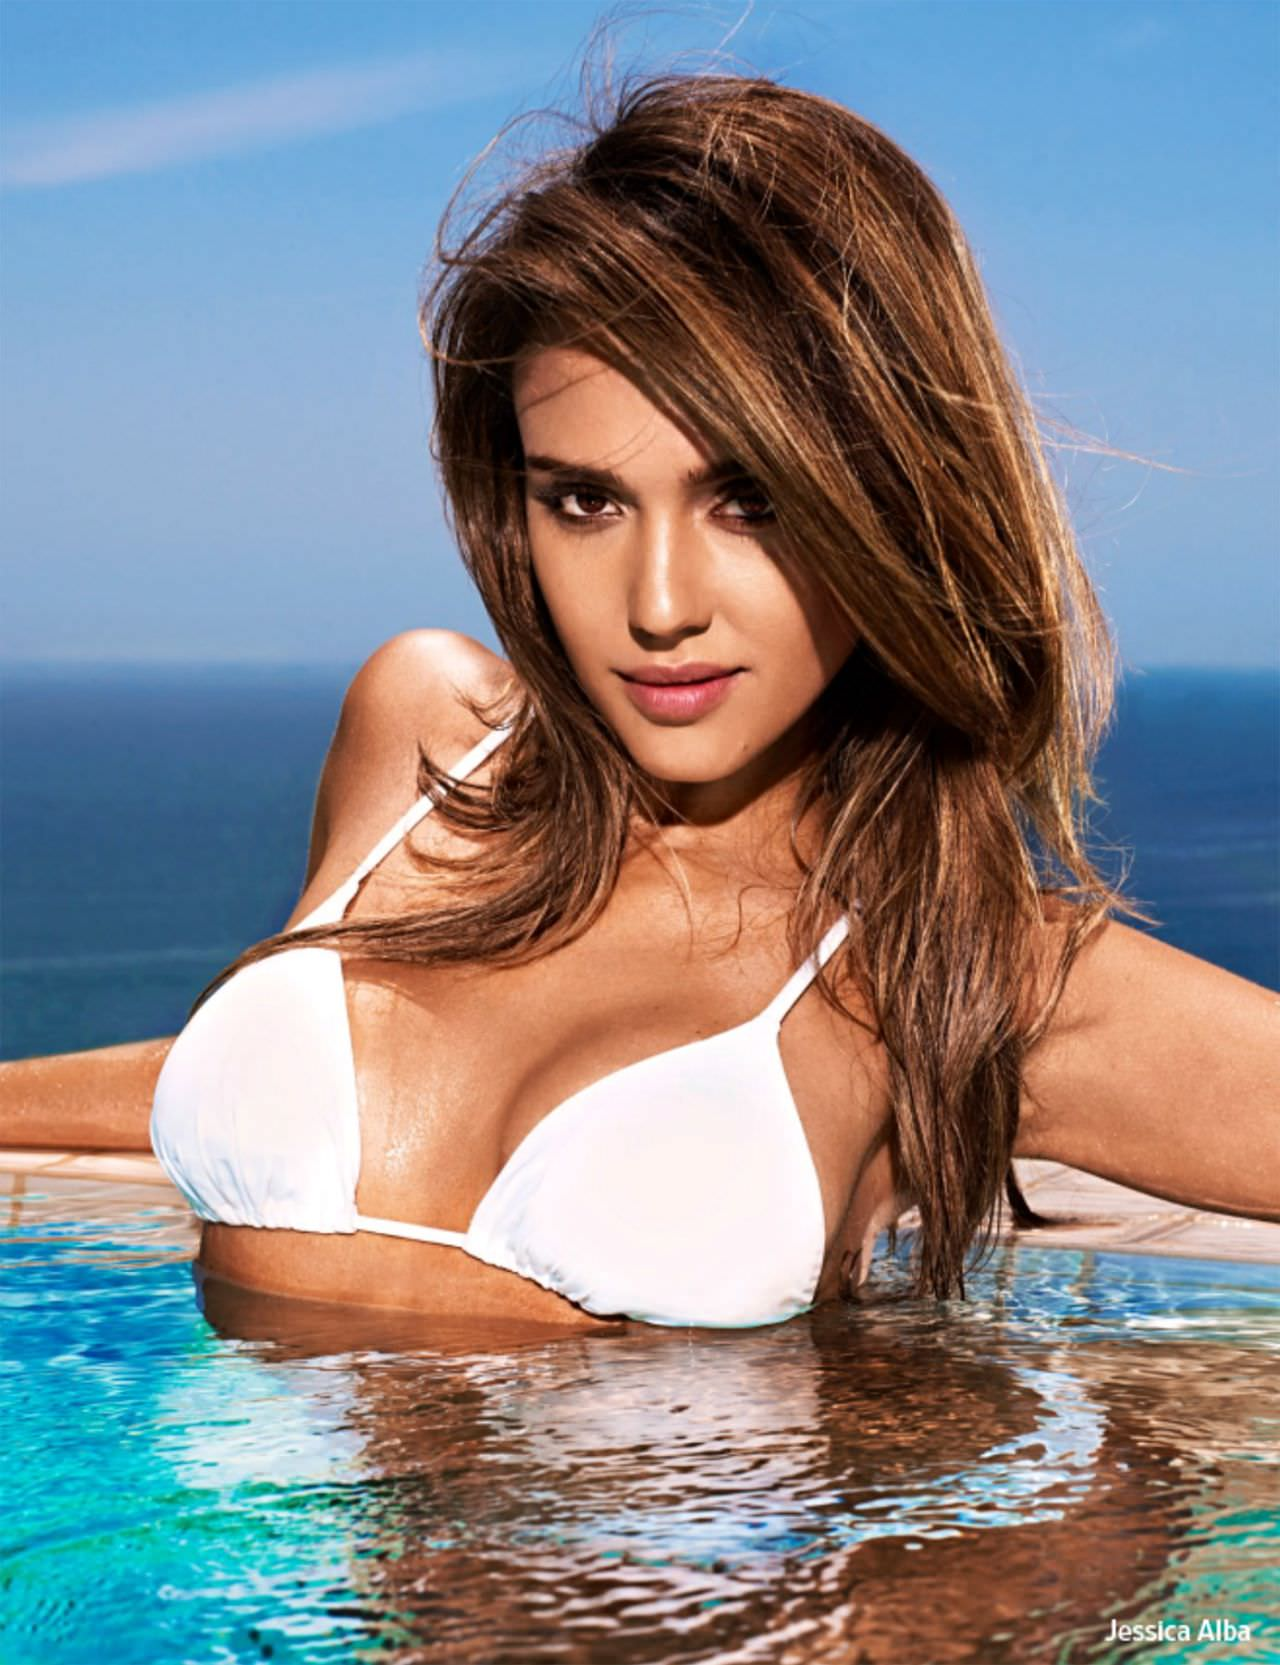 Jessica Alba turns 34 on Tuesday, and we're celebrating with a look back at her best bikini pictures.